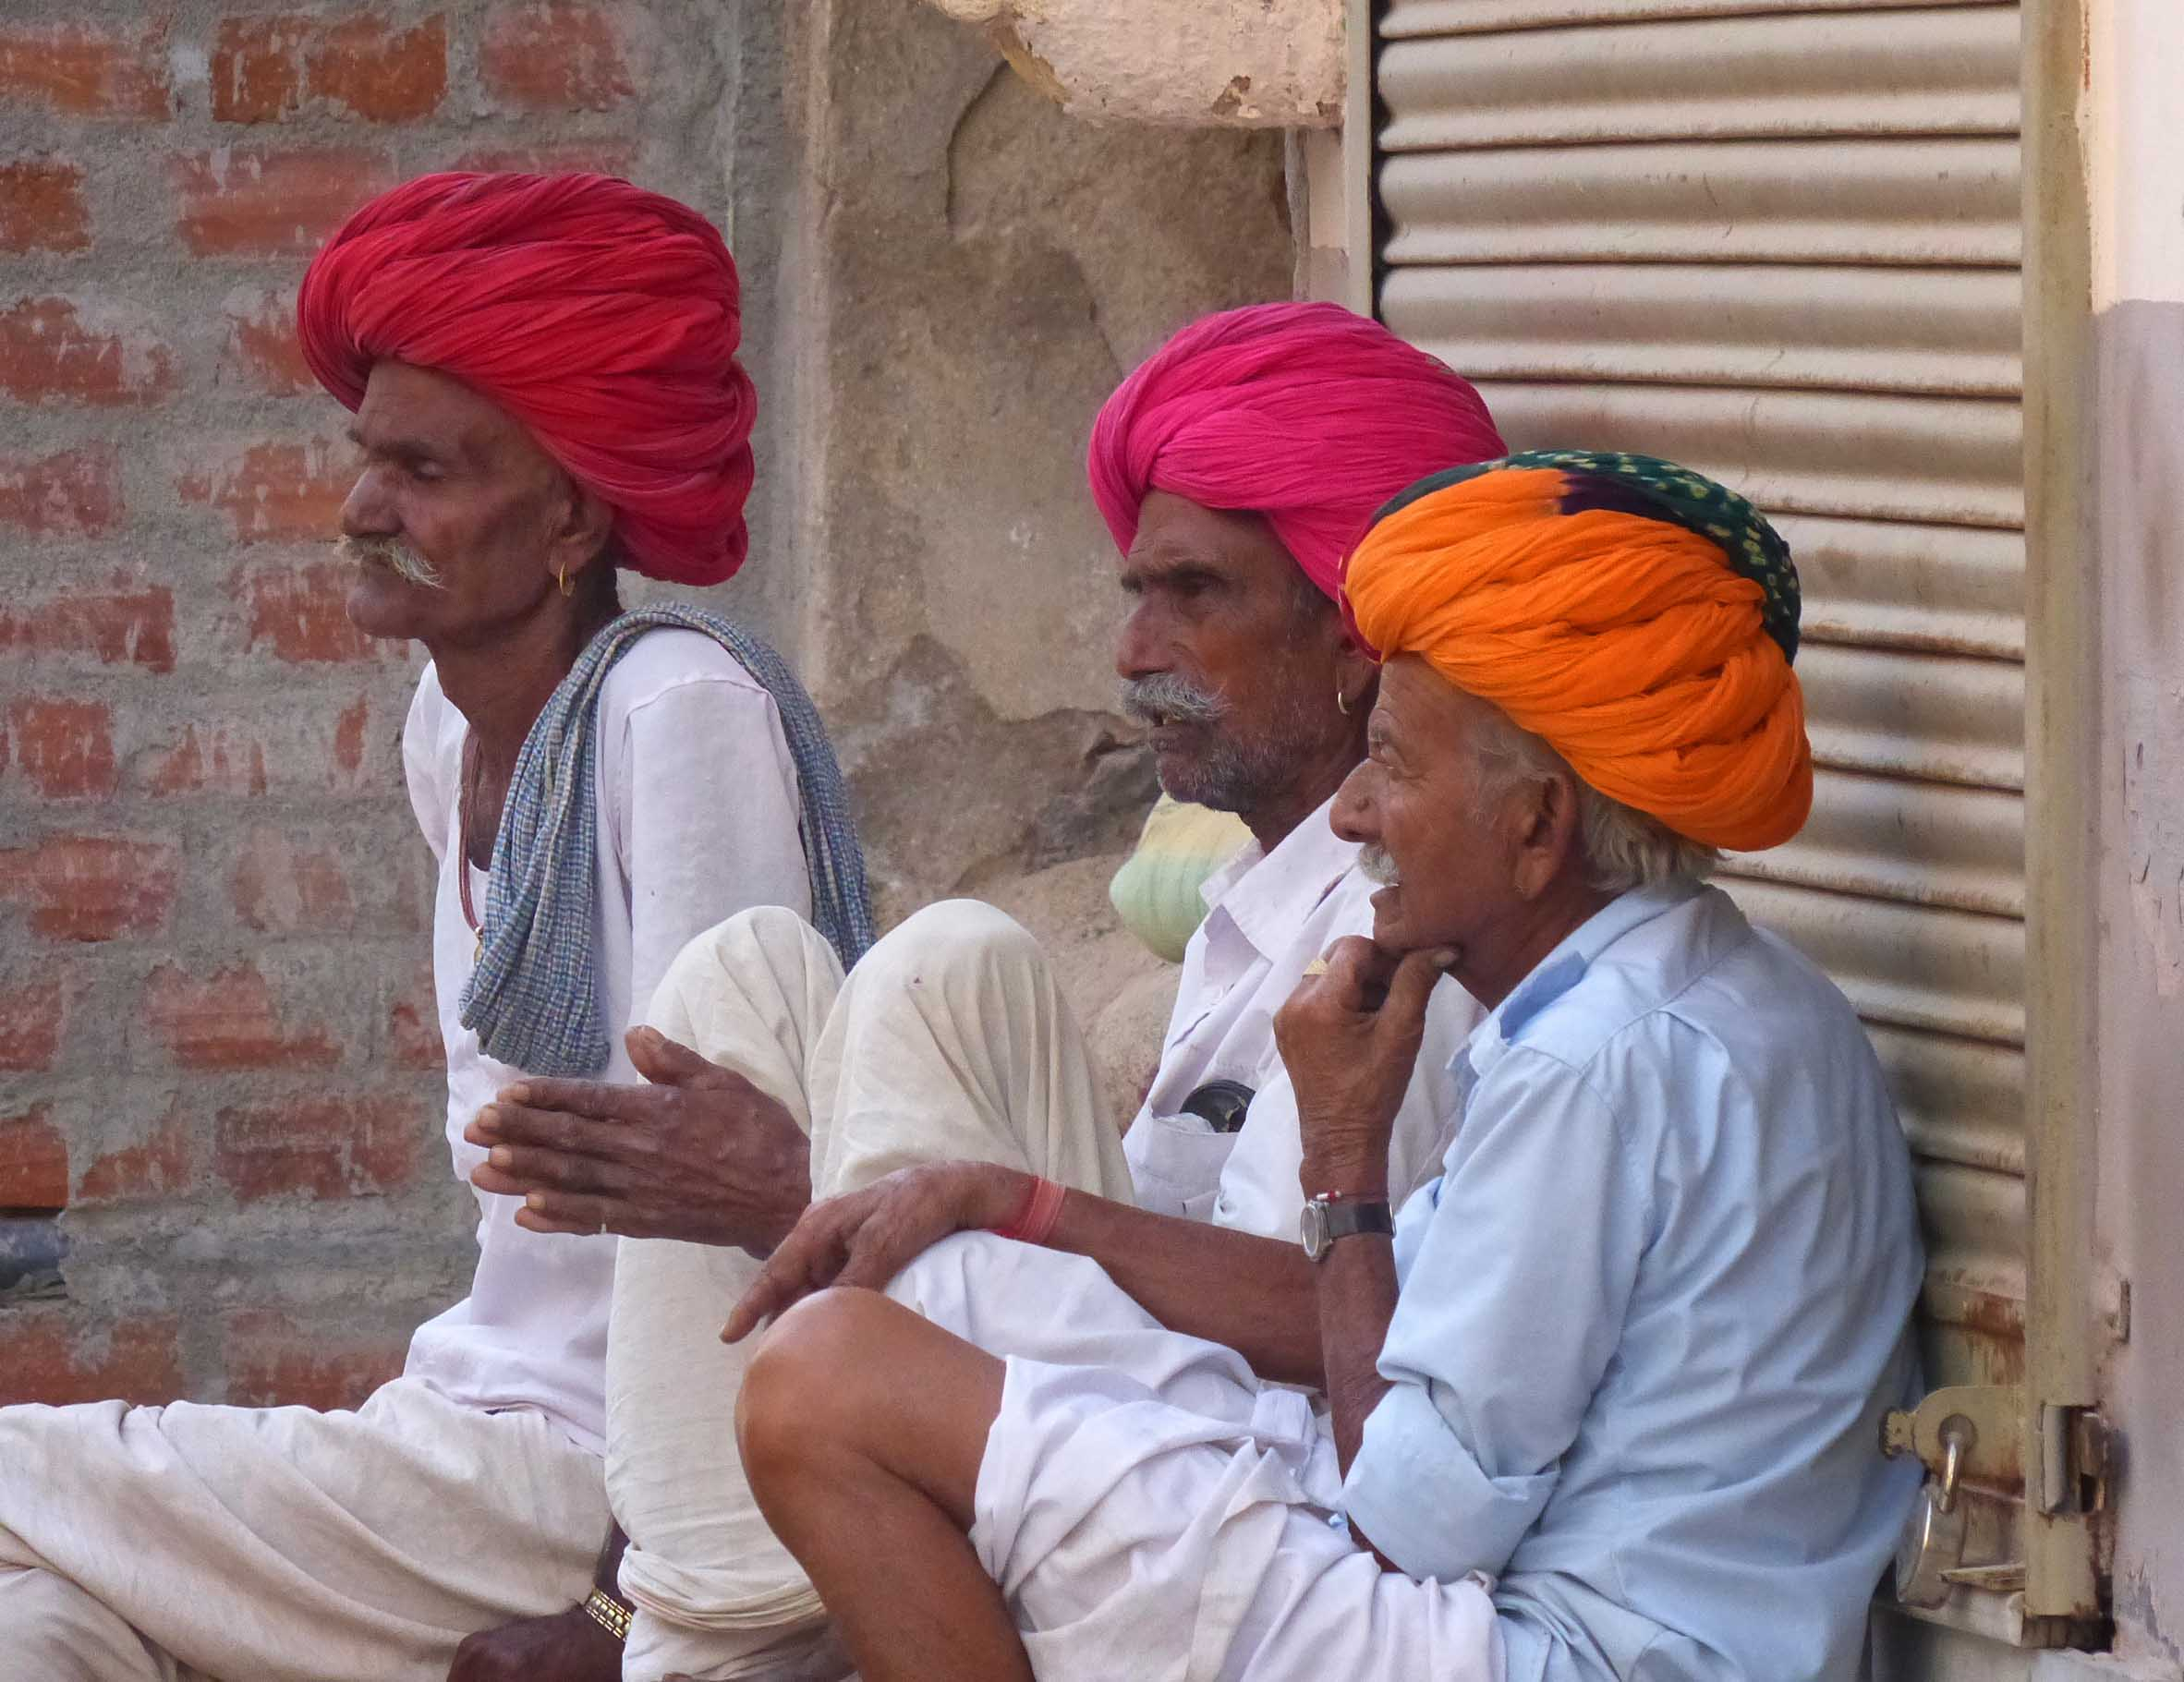 Three men in white with colourful turbans